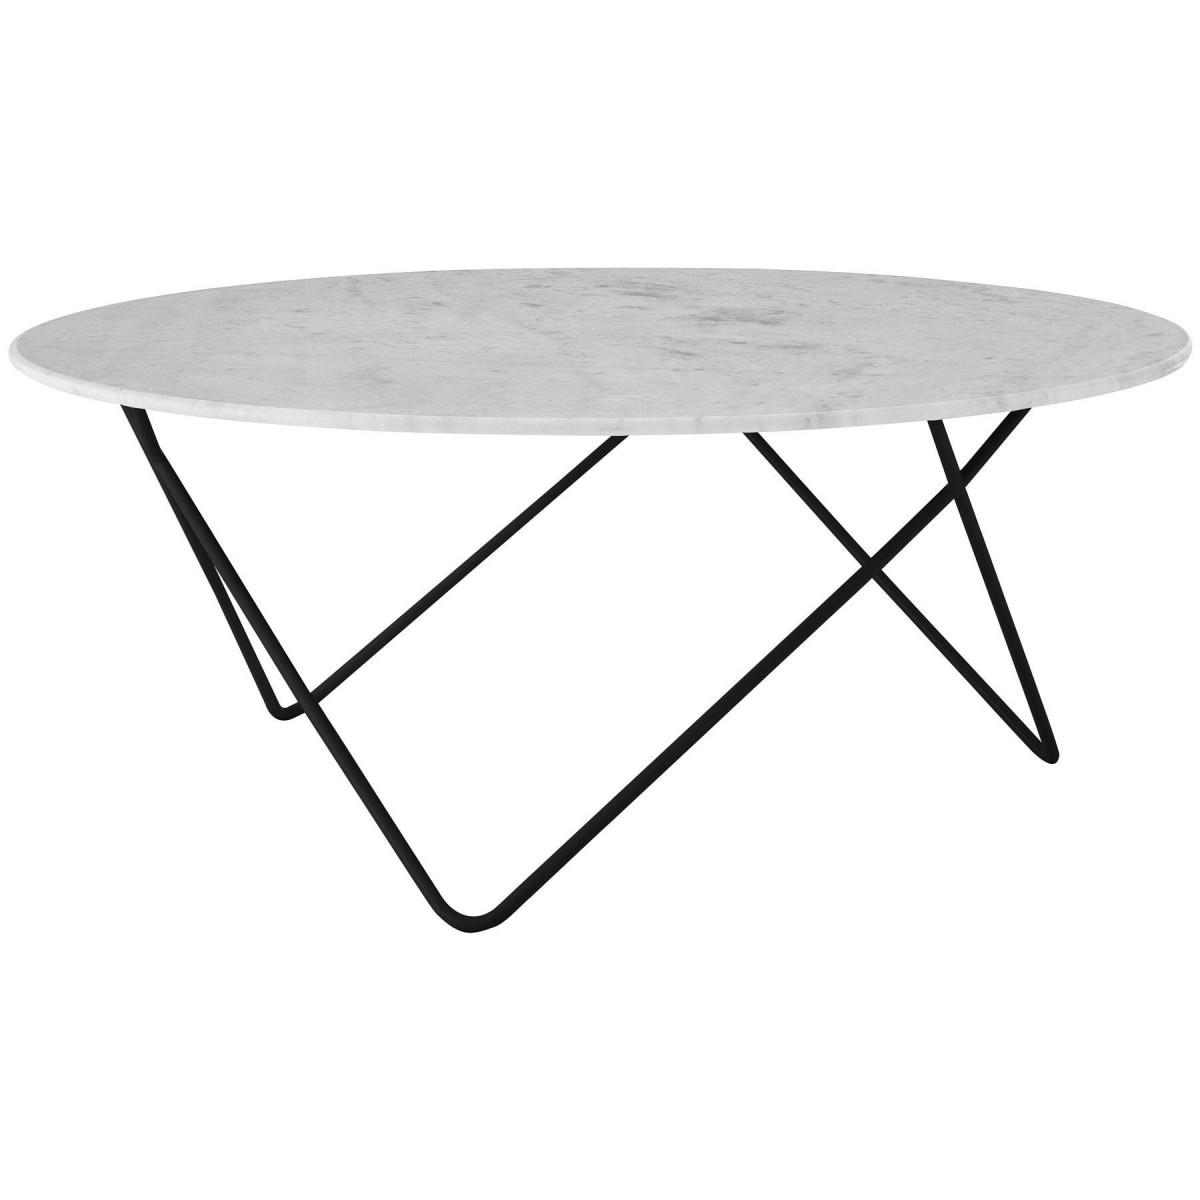 Modern Home Rolo Round Coffee Table White Marble Black Metal Legs Free Next Day Delivery